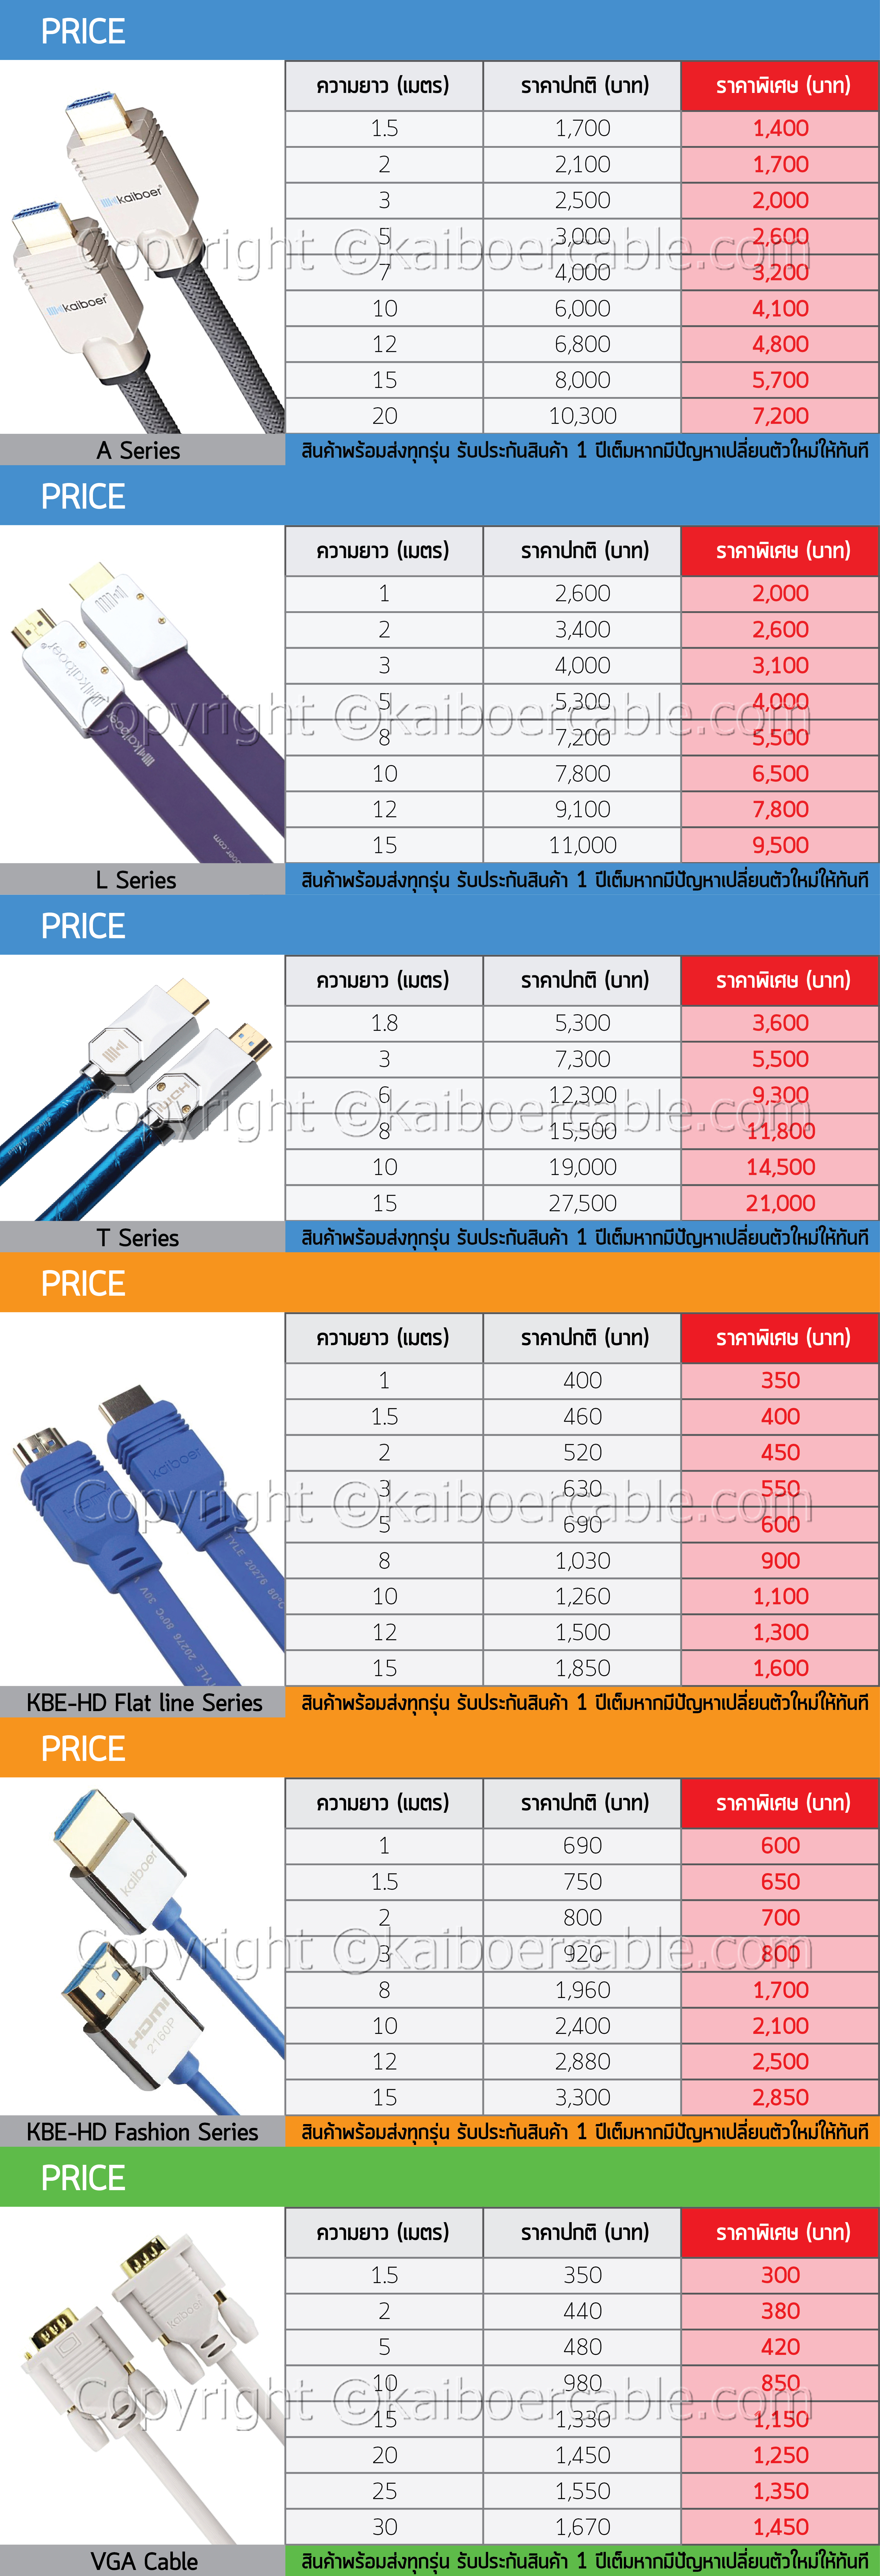 Kaiboer_Kbeh_T_Series_HDMI_Cable_Price